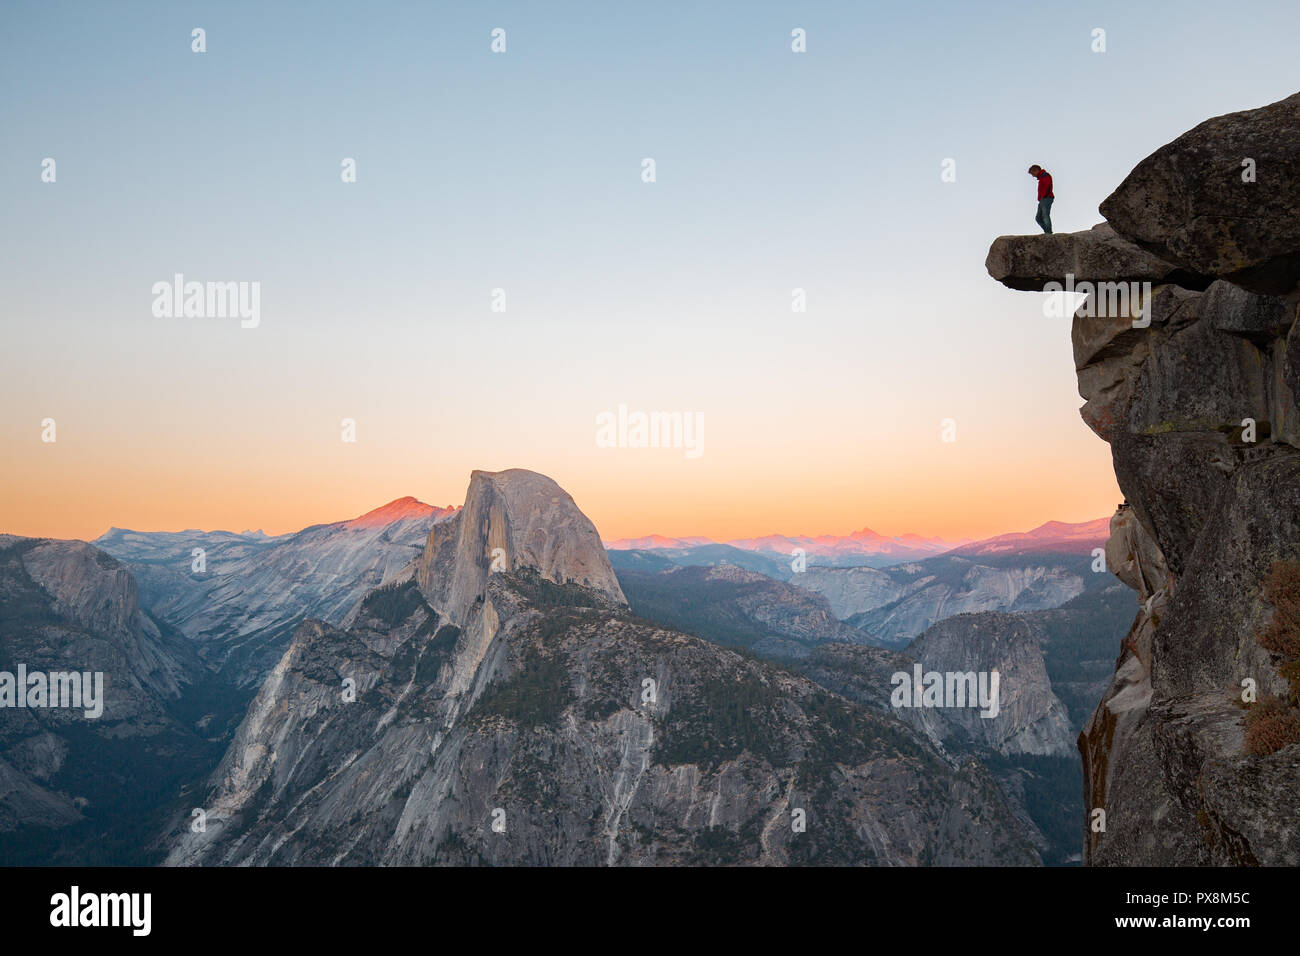 A fearless hiker is standing on an overhanging rock enjoying the view towards famous Half Dome at Glacier Point overlook in beautiful evening twilight - Stock Image